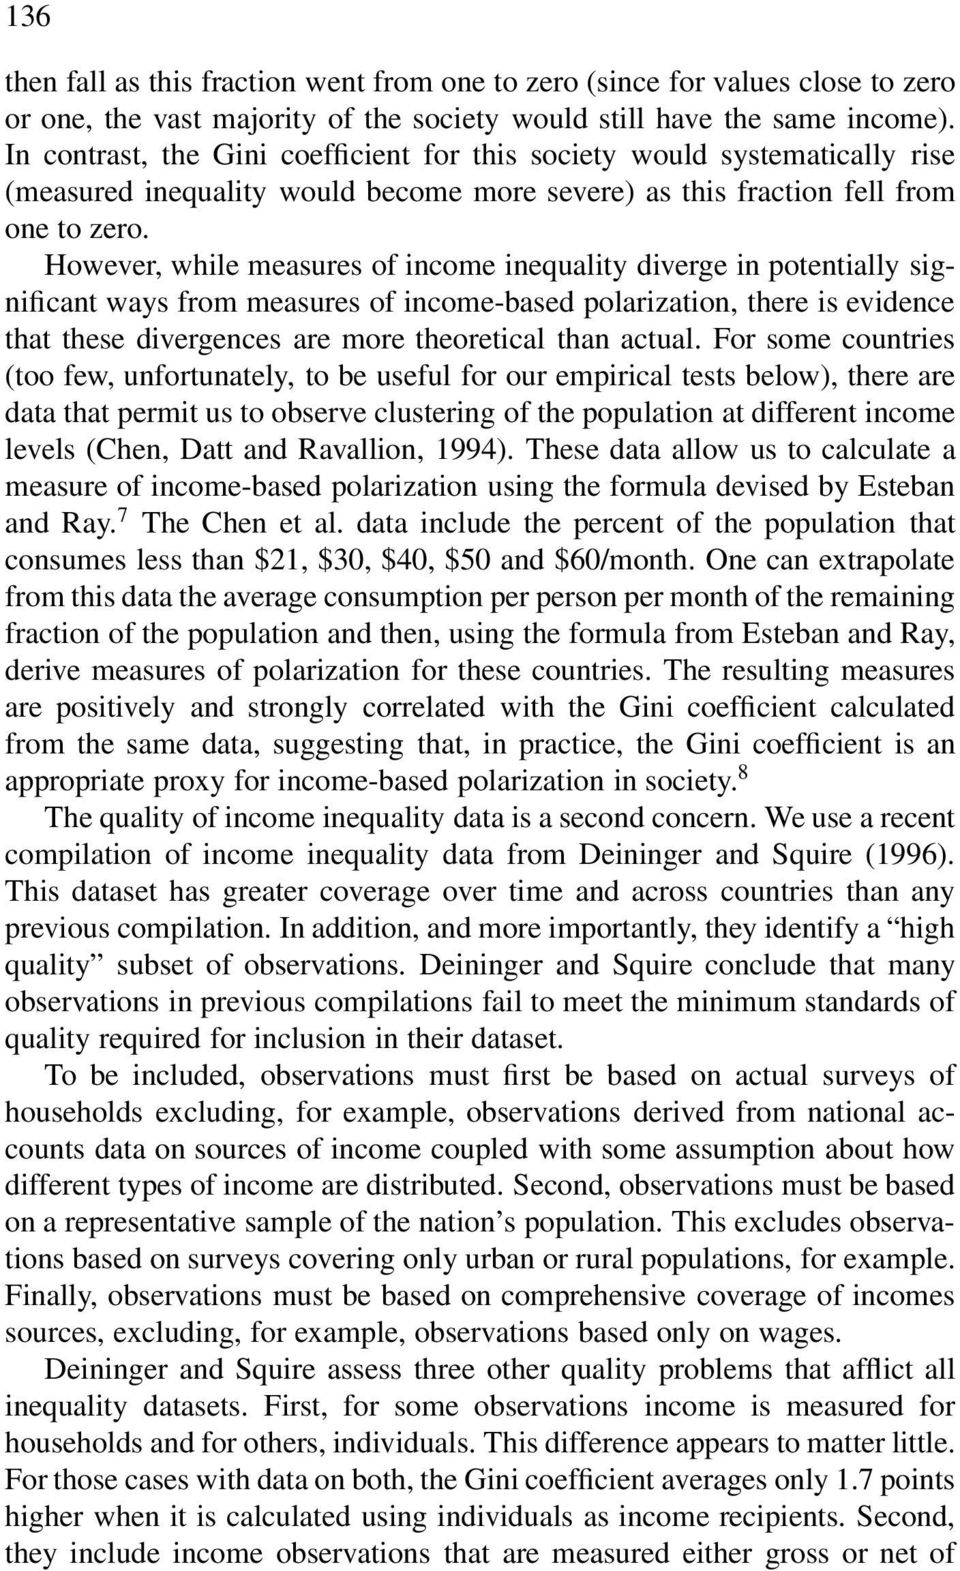 However, while measures of income inequality diverge in potentially significant ways from measures of income-based polarization, there is evidence that these divergences are more theoretical than